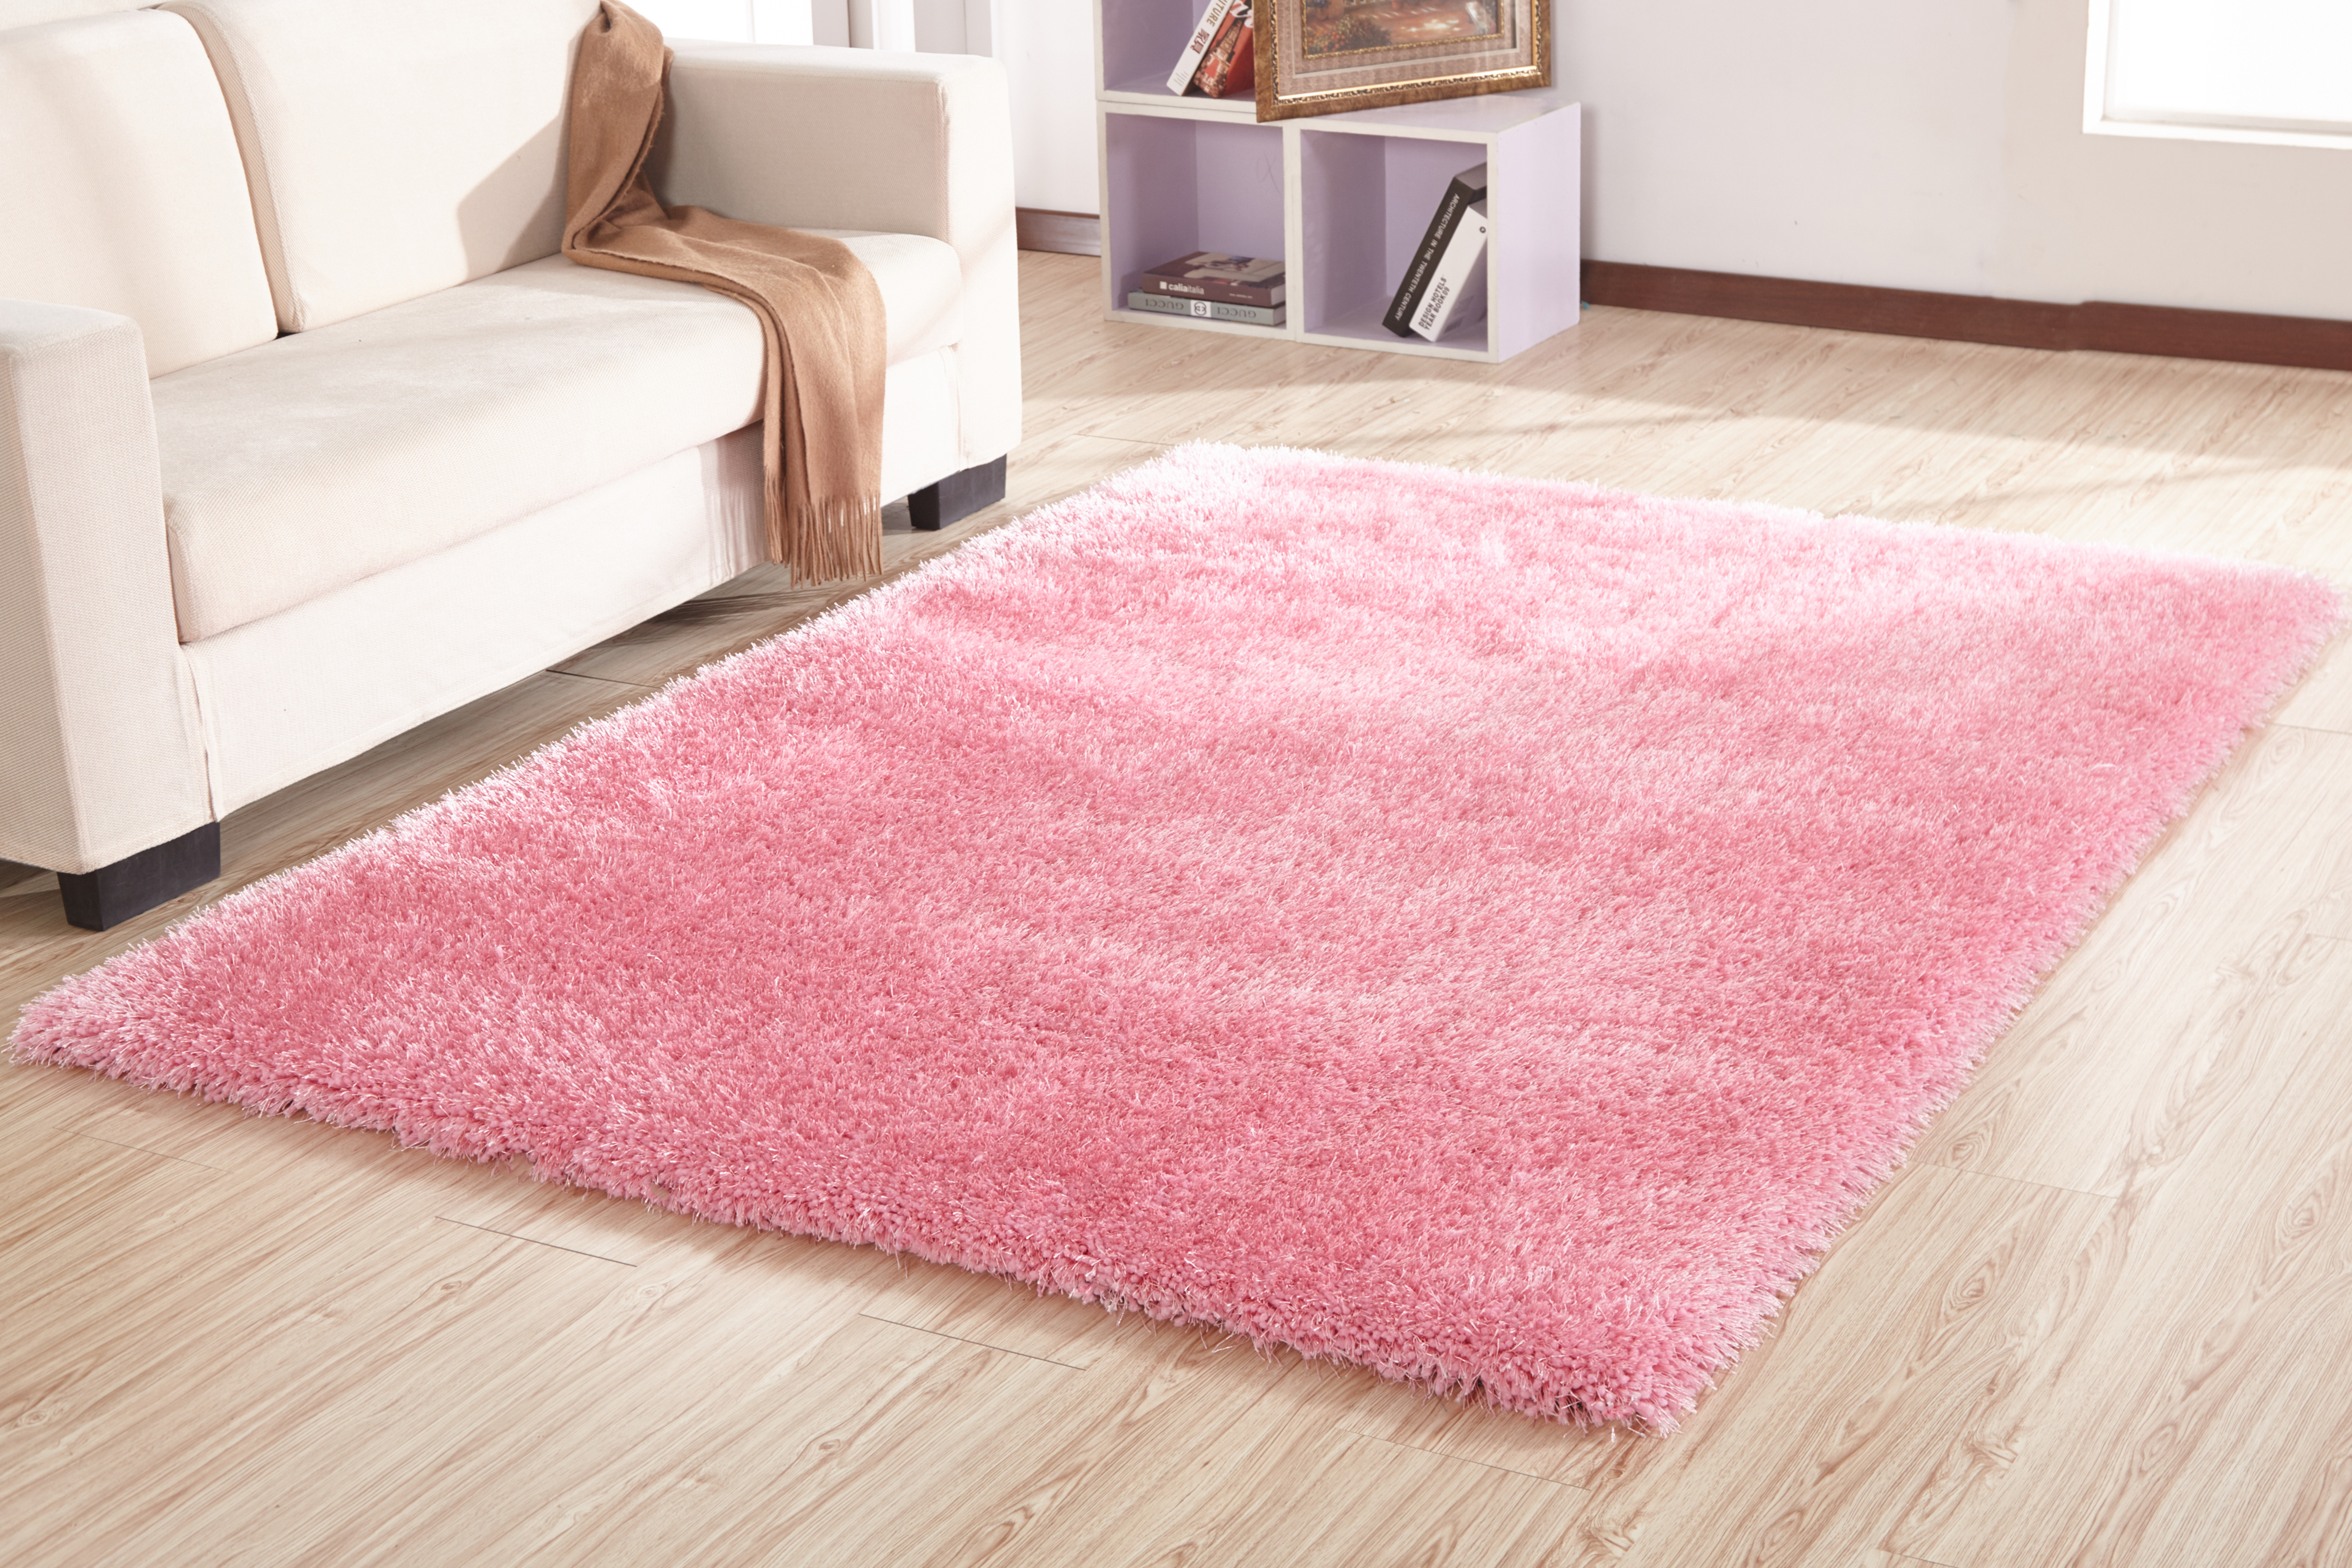 Chubby Pink Area Rug 5 X 7 1stopbedrooms